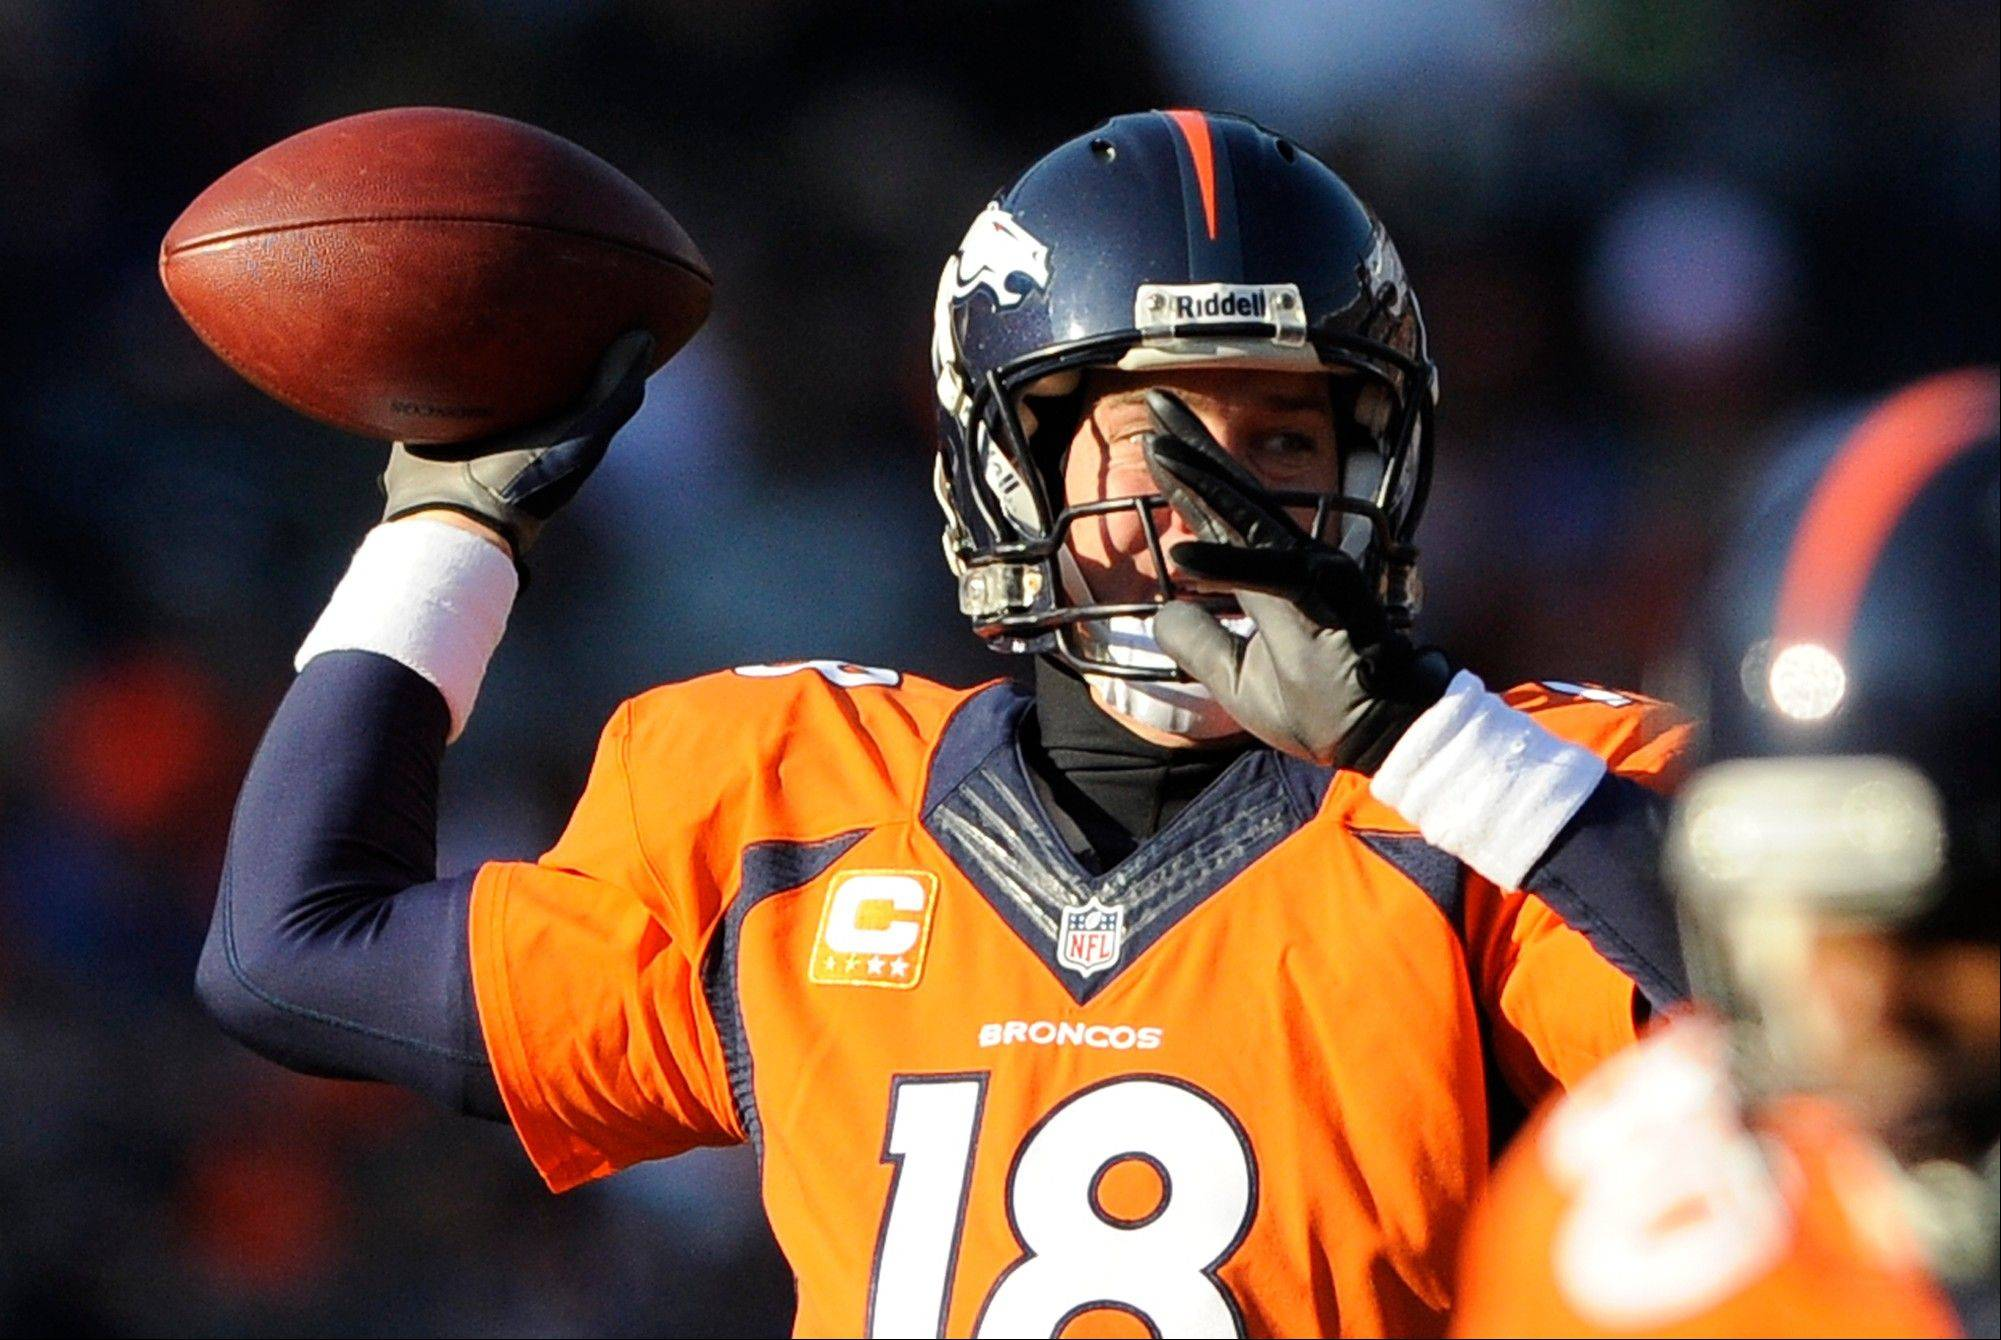 Denver Broncos quarterback Peyton Manning throws against the Tennessee Titans during the first half of an NFL football game on Sunday, Dec. 8, 2013, in Denver.